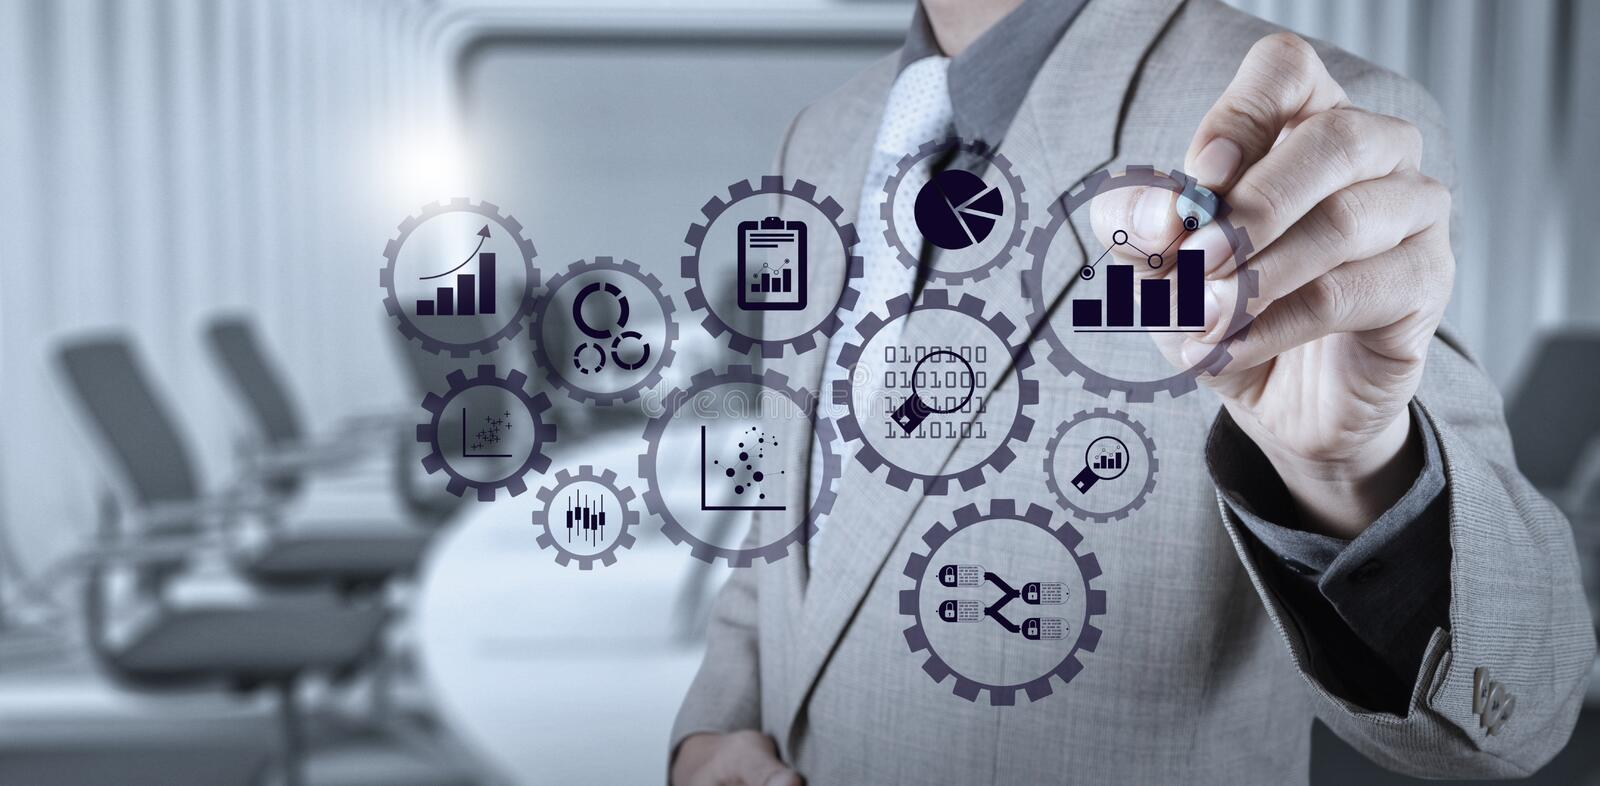 Business data analytics management with connected gear cogs with KPI financial charts stock photos